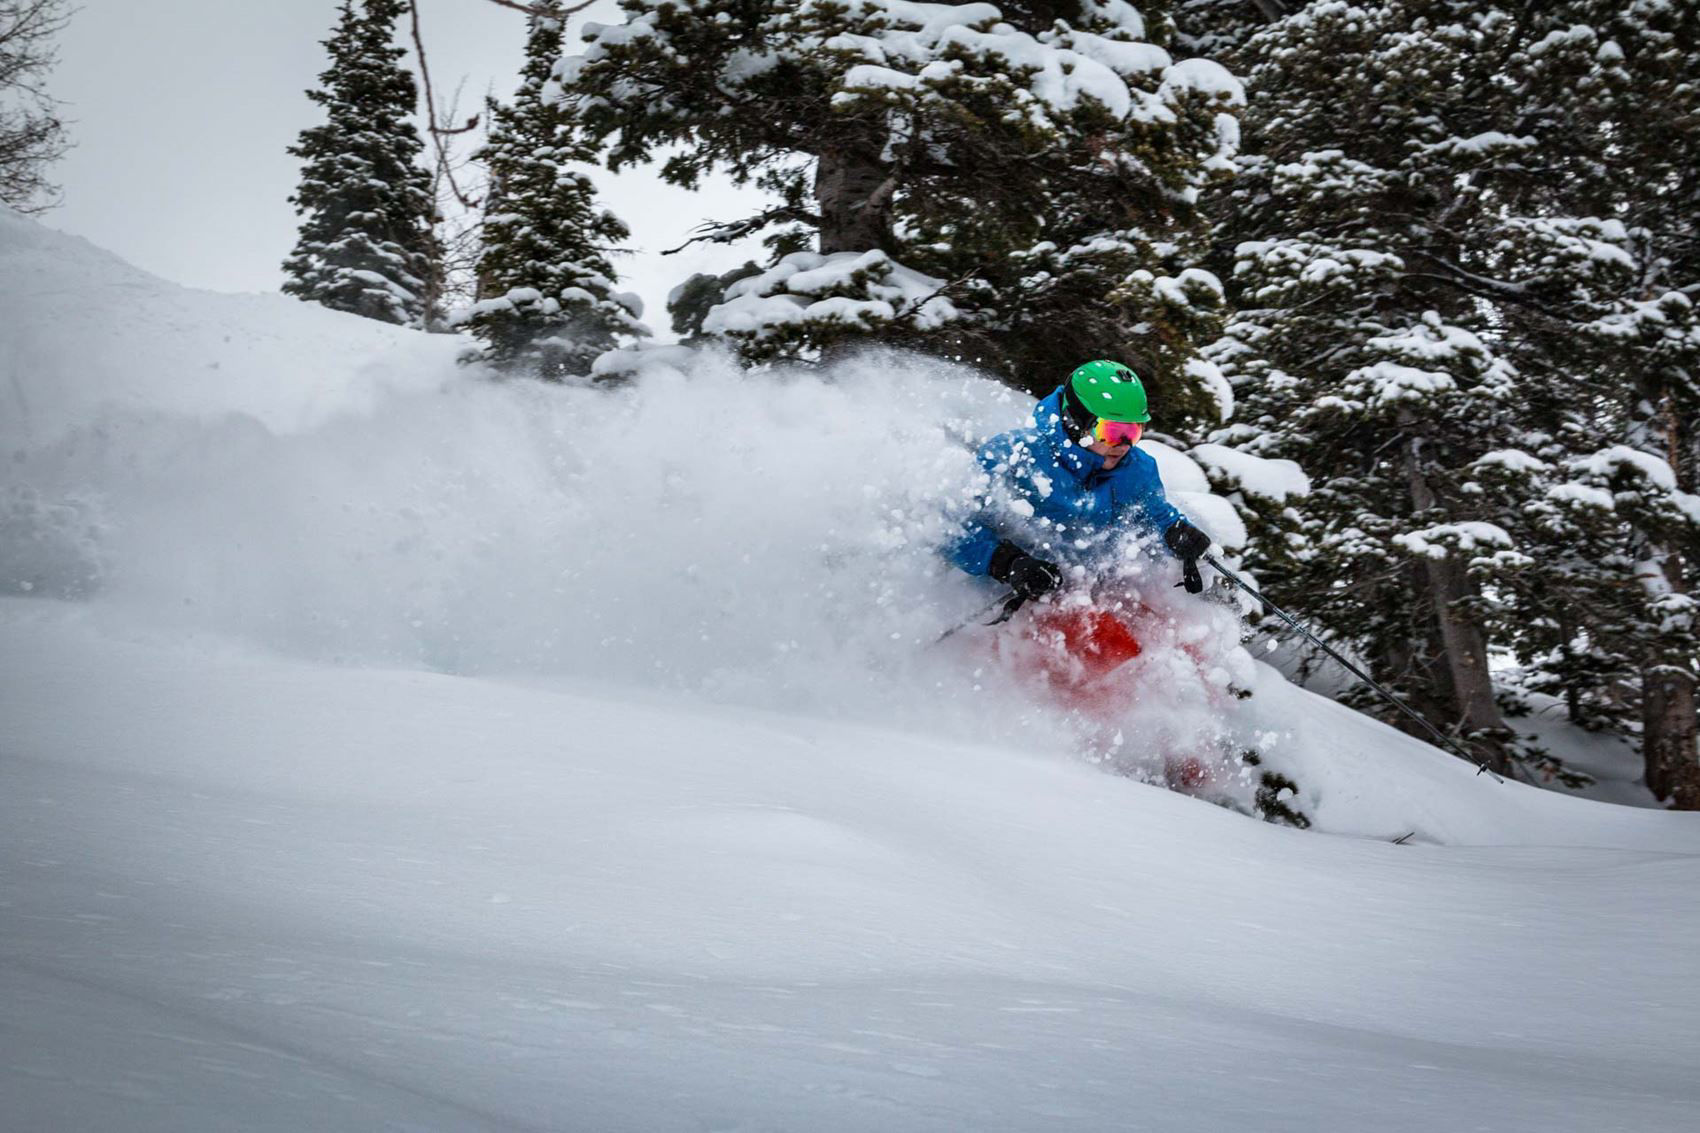 Picture of Season Pass Liability Waiver